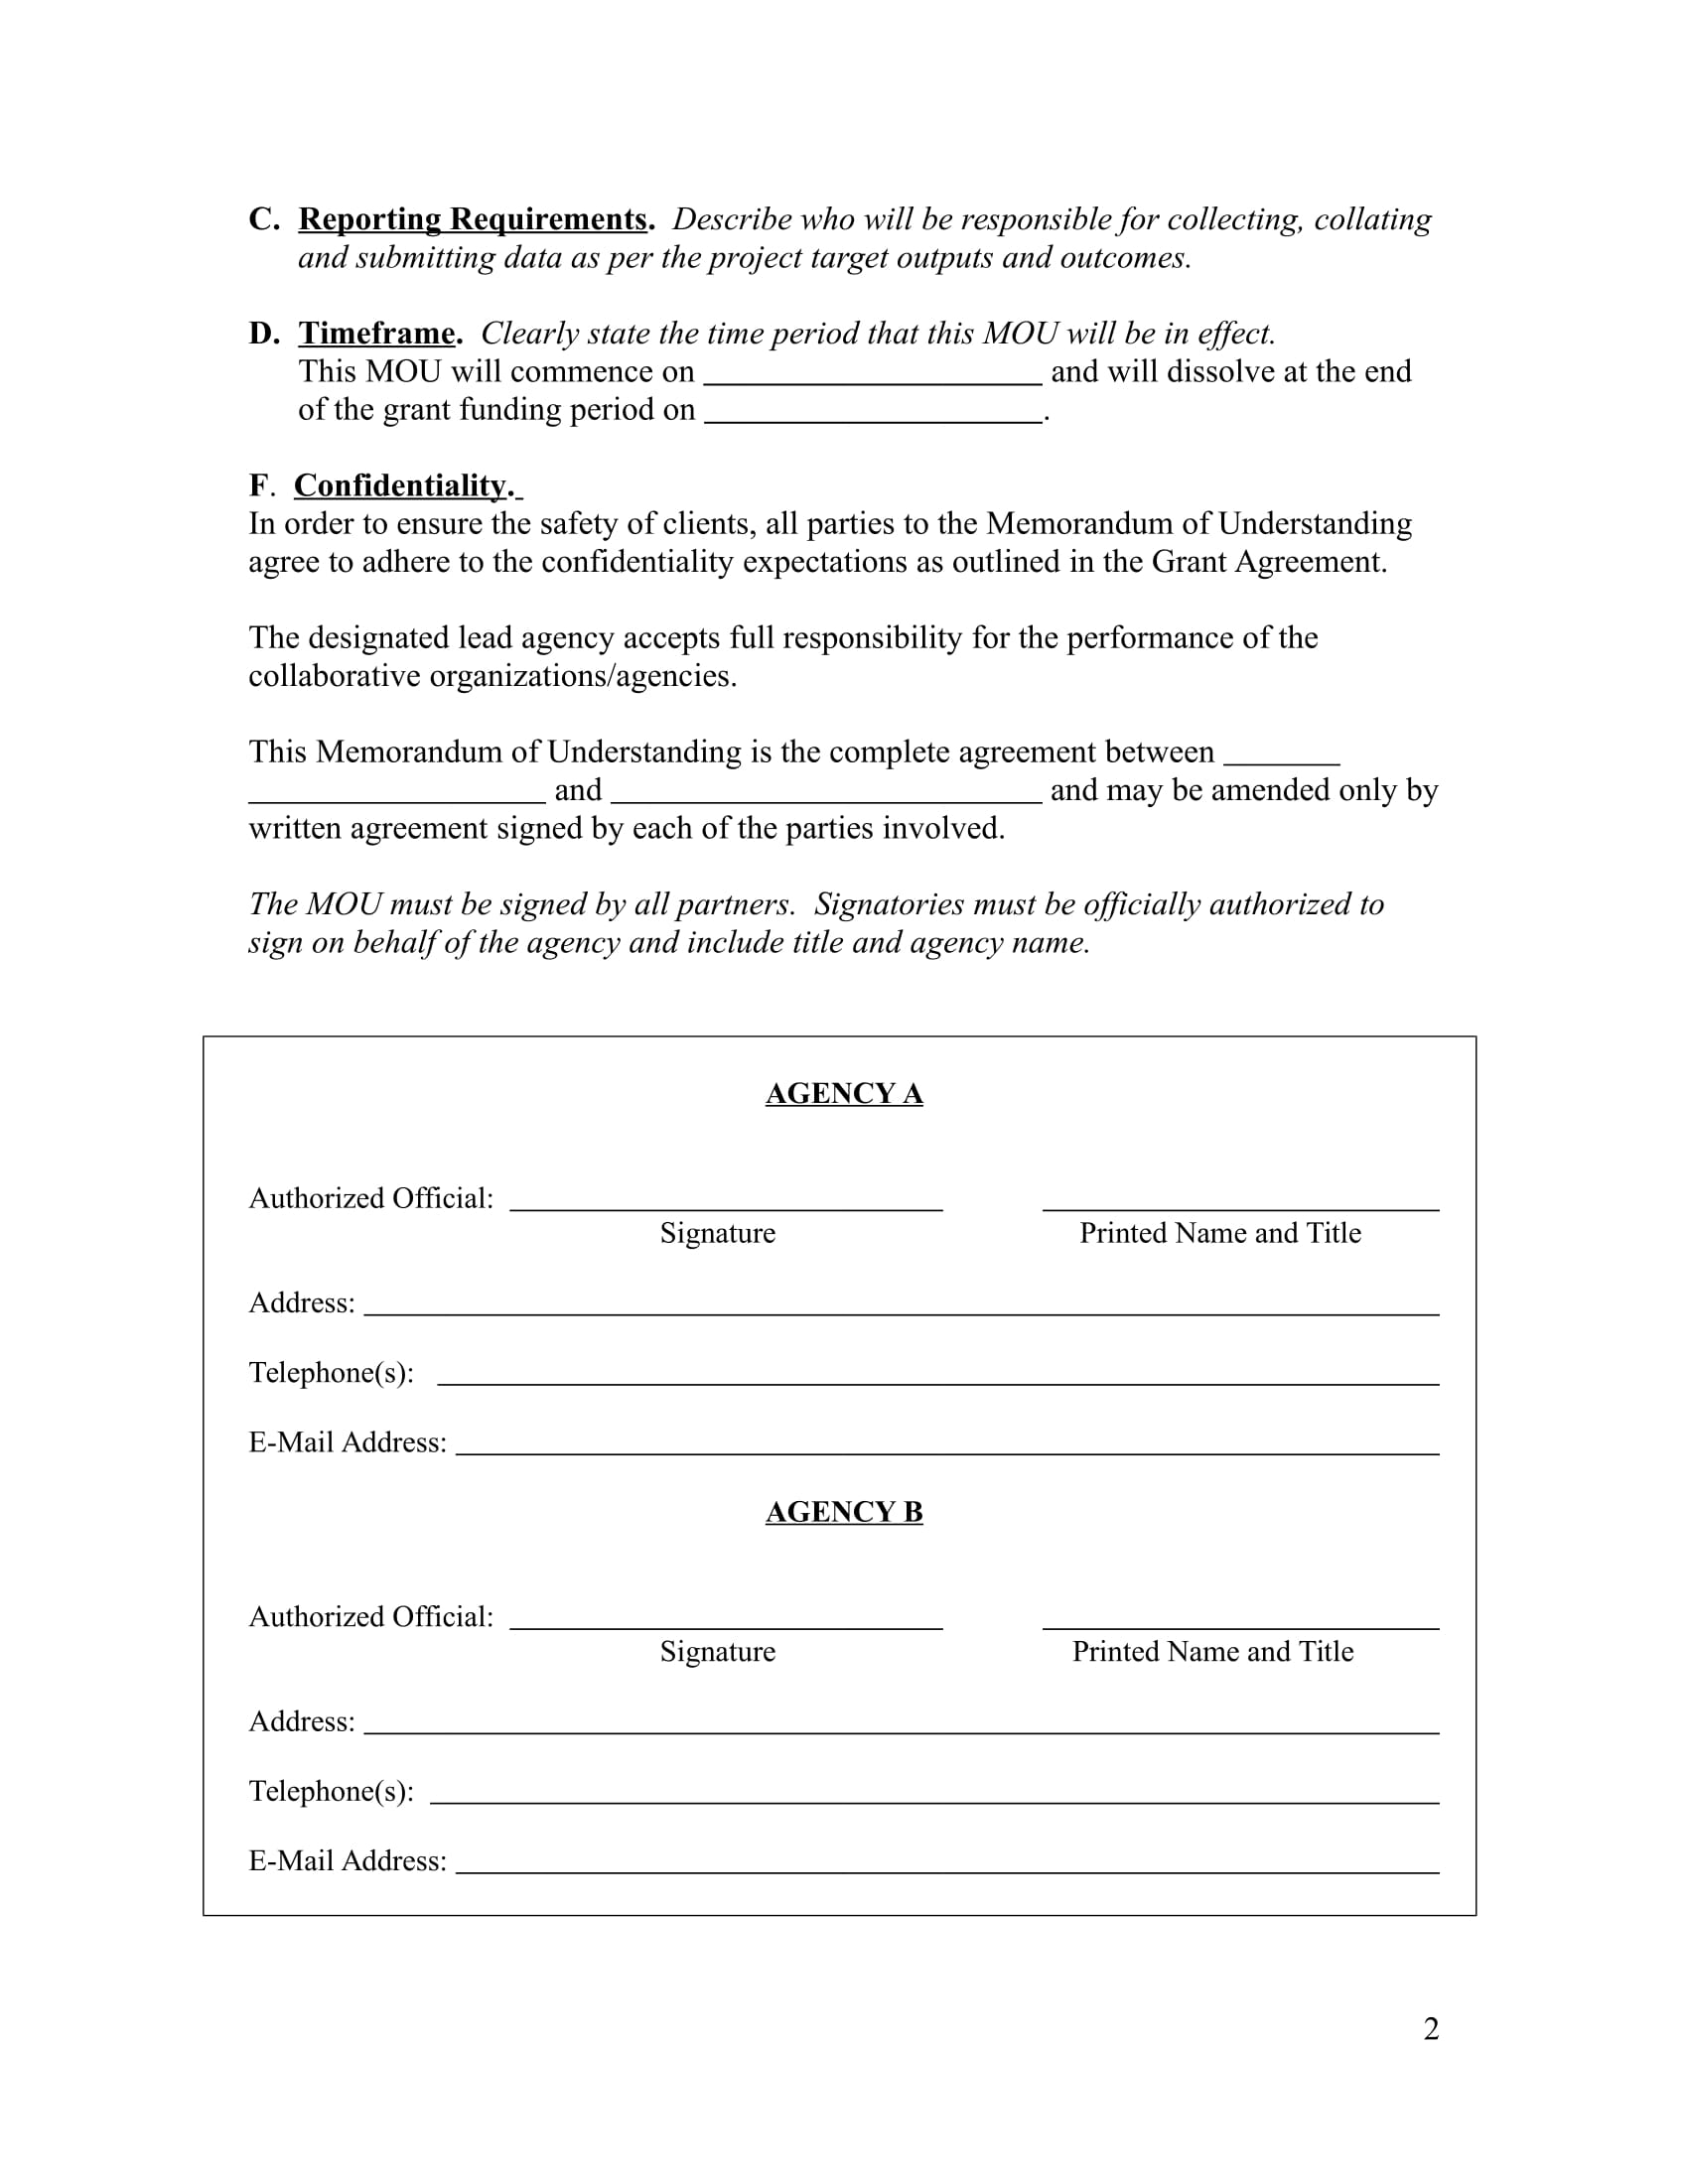 Memorandum download free business letter templates forms menus memorandum of understanding wajeb Images